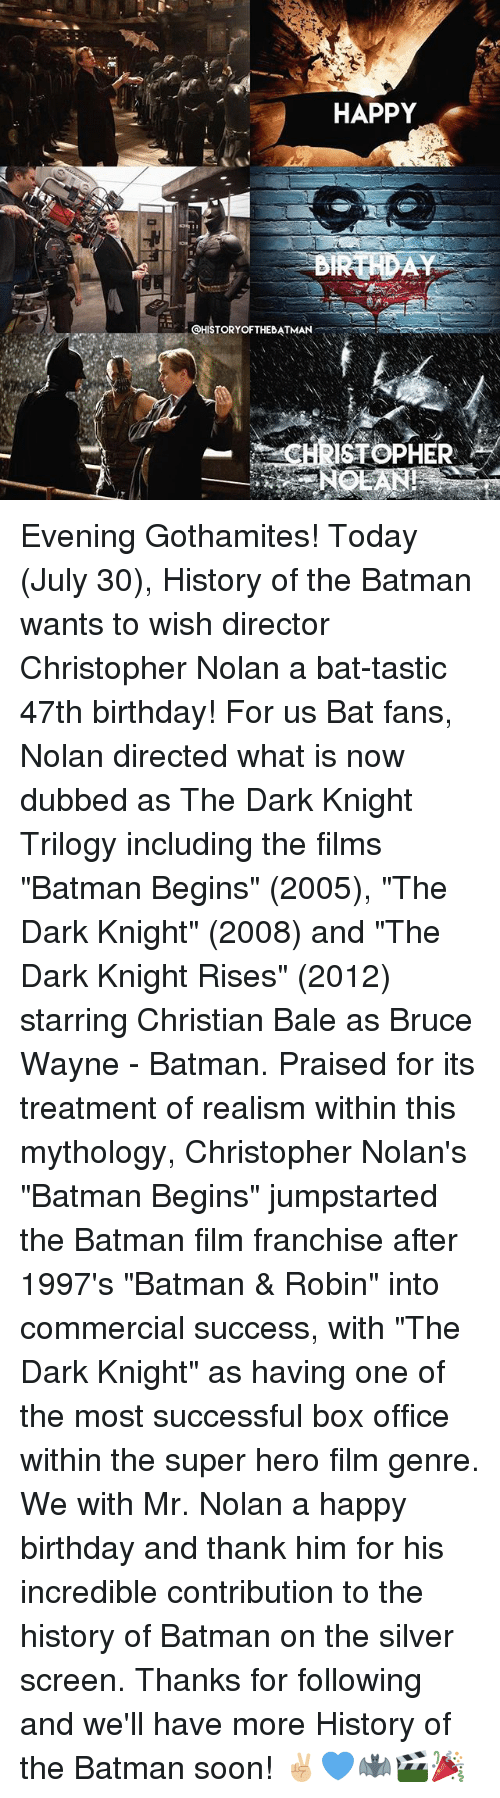 ◀ Share Related ▶ Batman Birthday memes Soon... Happy Birthday Box Office Christian Bale Happy History Office Silver The Dark Knight next → collect meme → Embed it next → HAPPY @HISTORYOFTHEBATMAN- ISTOPHER Evening Gothamites! Today July 30 History of the Batman wants to wish director Christopher Nolan a bat-tastic 47th birthday! For us Bat fans Nolan directed what is now dubbed as The Dark Knight Trilogy including the films Batman Begins 2005 The Dark Knight 2008 and The Dark Knight Rises 2012 starring Christian Bale as Bruce Wayne - Batman Praised for its treatment of realism within this mythology Christopher Nolan's Batman Begins jumpstarted the Batman film franchise after 1997's Batman & Robin into commercial success with The Dark Knight as having one of the most successful box office within the super hero film genre We with Mr Nolan a happy birthday and thank him for his incredible contribution to the history of Batman on the silver screen Thanks for following and we'll have more History of the Batman soon! ✌🏼💙🦇🎬🎉 Meme Batman Birthday memes Soon... Happy Birthday Box Office Christian Bale Happy History Office Silver The Dark Knight The Dark Knight Rises Today What Is Batman Begins Film Success Batman Robin 🤖 hero super dark robin box dark knight the batman mythology dark knight rises christopher nolan bat bruce wayne him one following the dark super hero bale franchise batman film the dark knight trilogy hero film realism july christopher now commercial director what nolan dark knight trilogy genre for evening batman films films history of incredible treatment more this well thanks thank including dubbed fans one of the most batman begins 2005 super-hero-film And Wish Wayne Christian Knight The The History Of Its Supere Heroes Bruce Screen After Silver Screen With Have Batman Batman Birthday Birthday memes memes Soon... Soon... Happy Birthday Happy Birthday Box Office Box Office Christian Bale Christian Bale Happy Happy History History Office Office Silver Silv